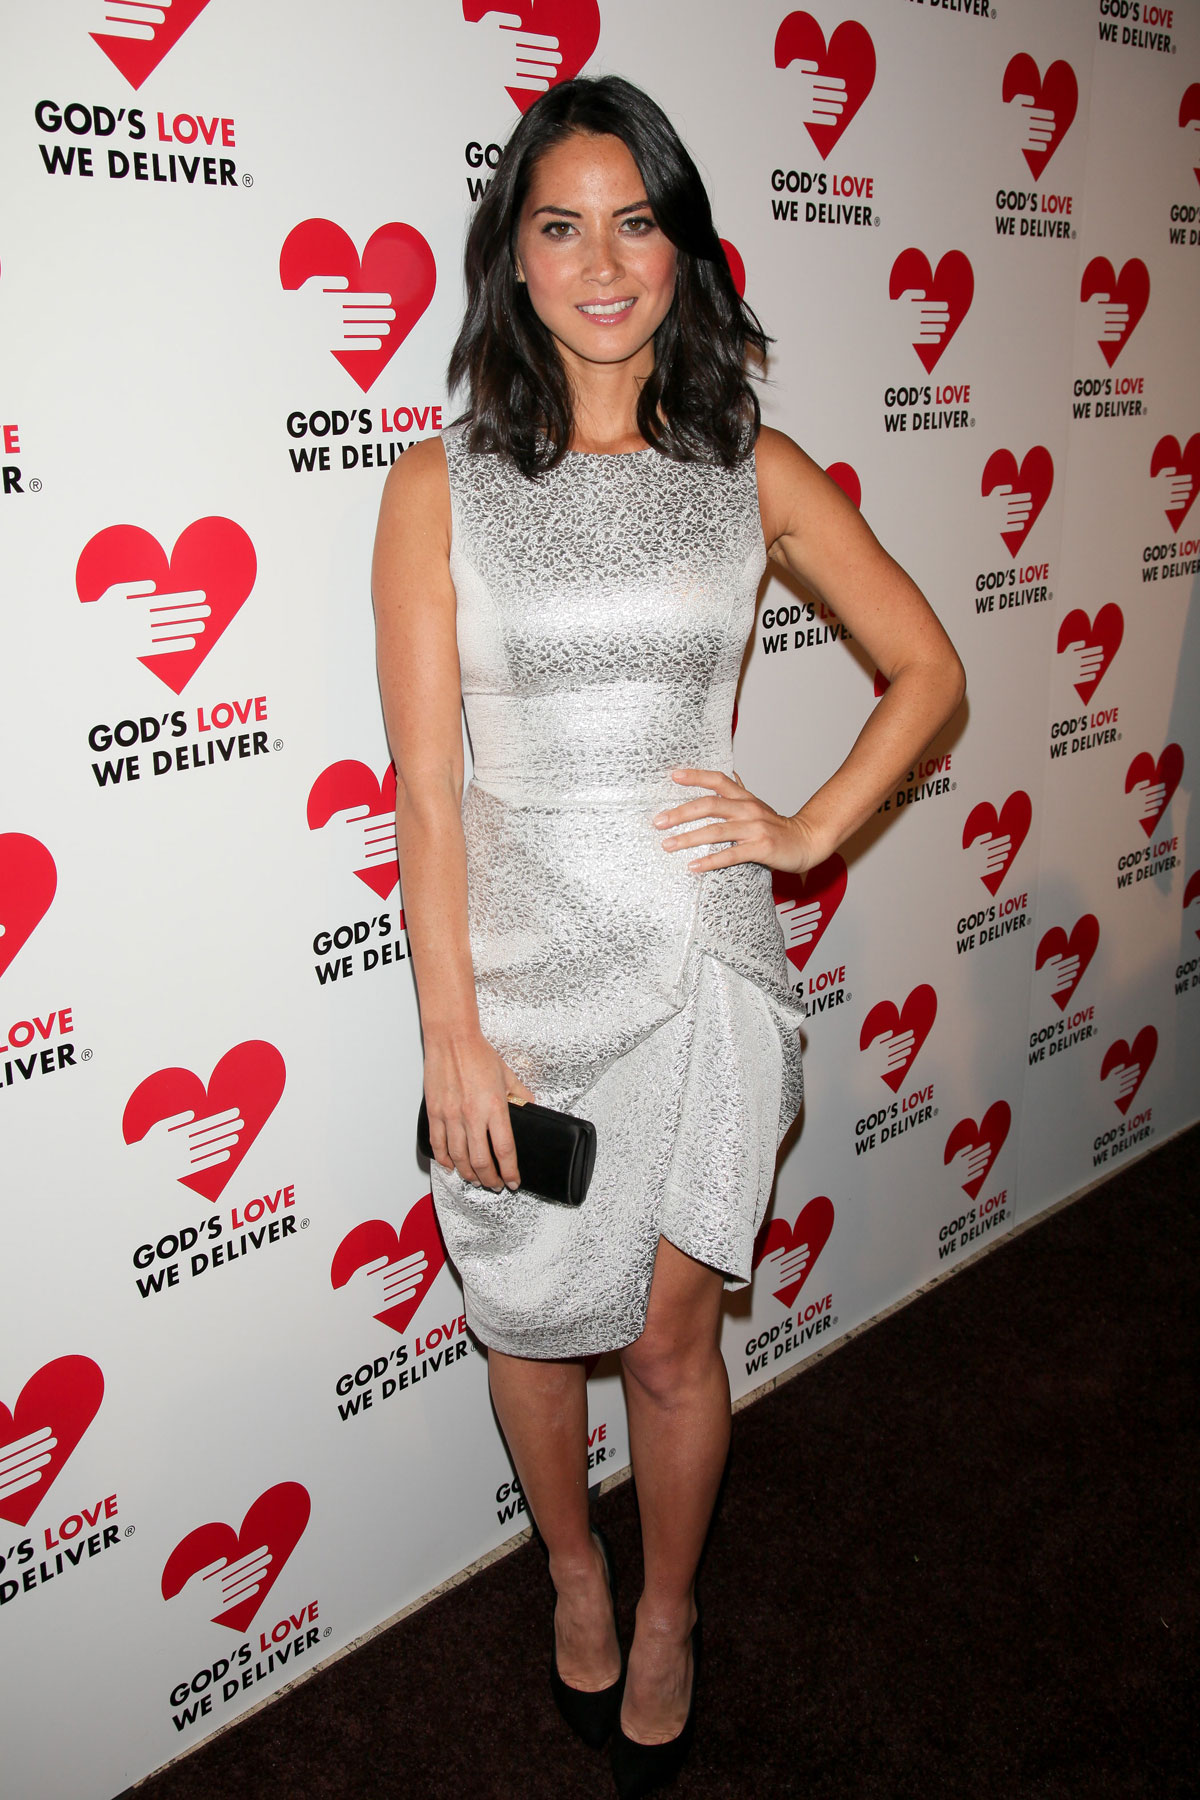 Olivia Munn 2012 : Olivia Munn – 2012 Gods Love We Deliver Golden Heart Gala-02